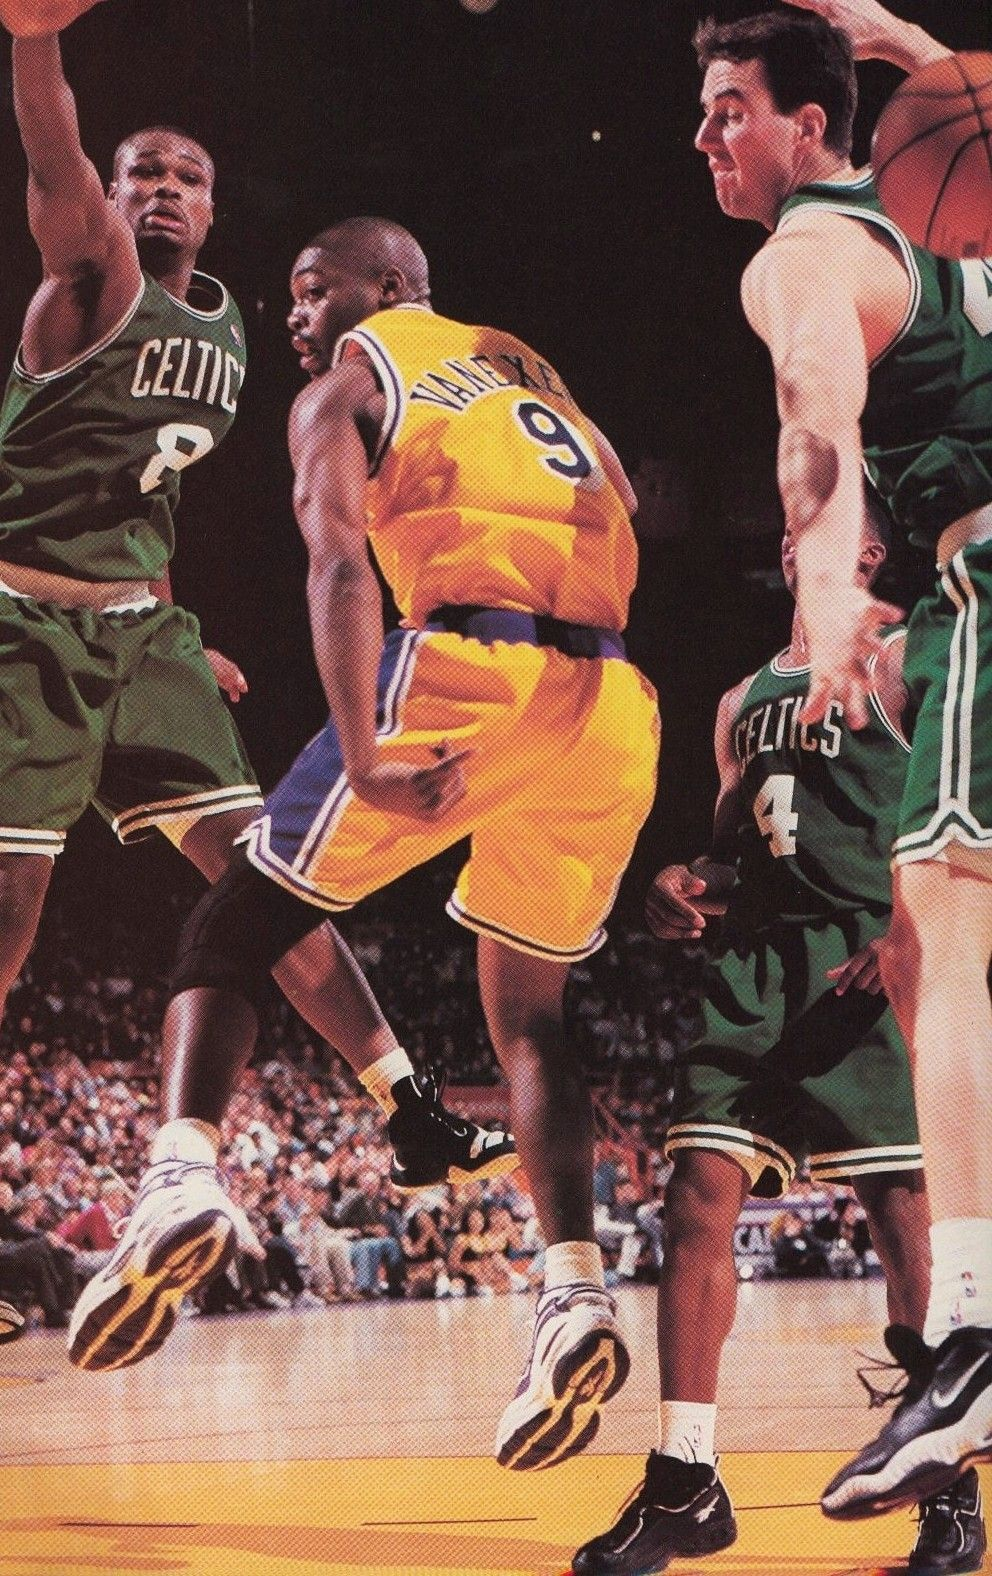 Van Exel Passes Out A Crowd, '98. Nba legends, Inside